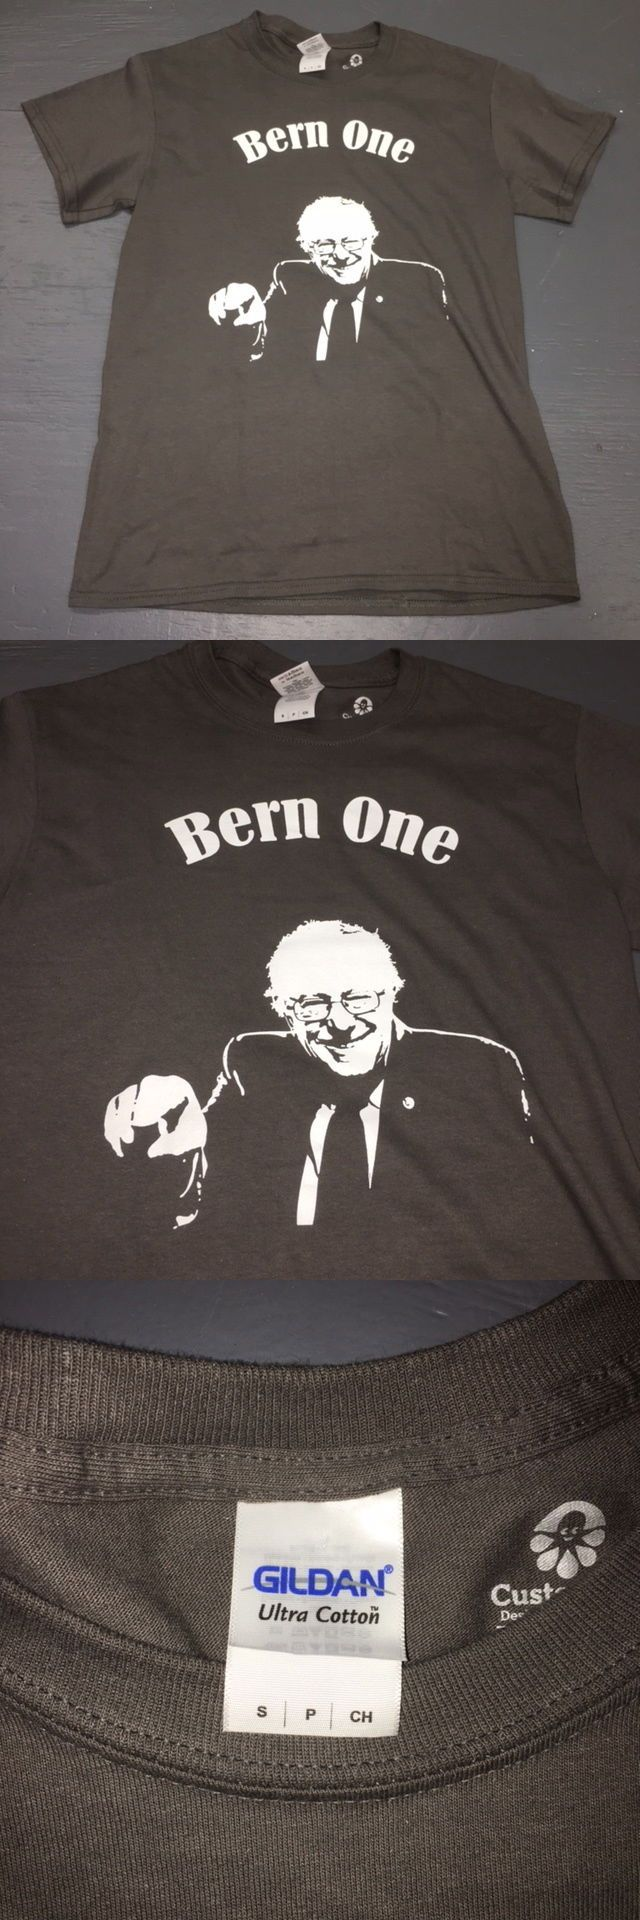 Bernie Sanders: Bernie Sanders Bern One 2016 Presidential Campaign T Shirt Democrat Mens Small -> BUY IT NOW ONLY: $2.99 on eBay!